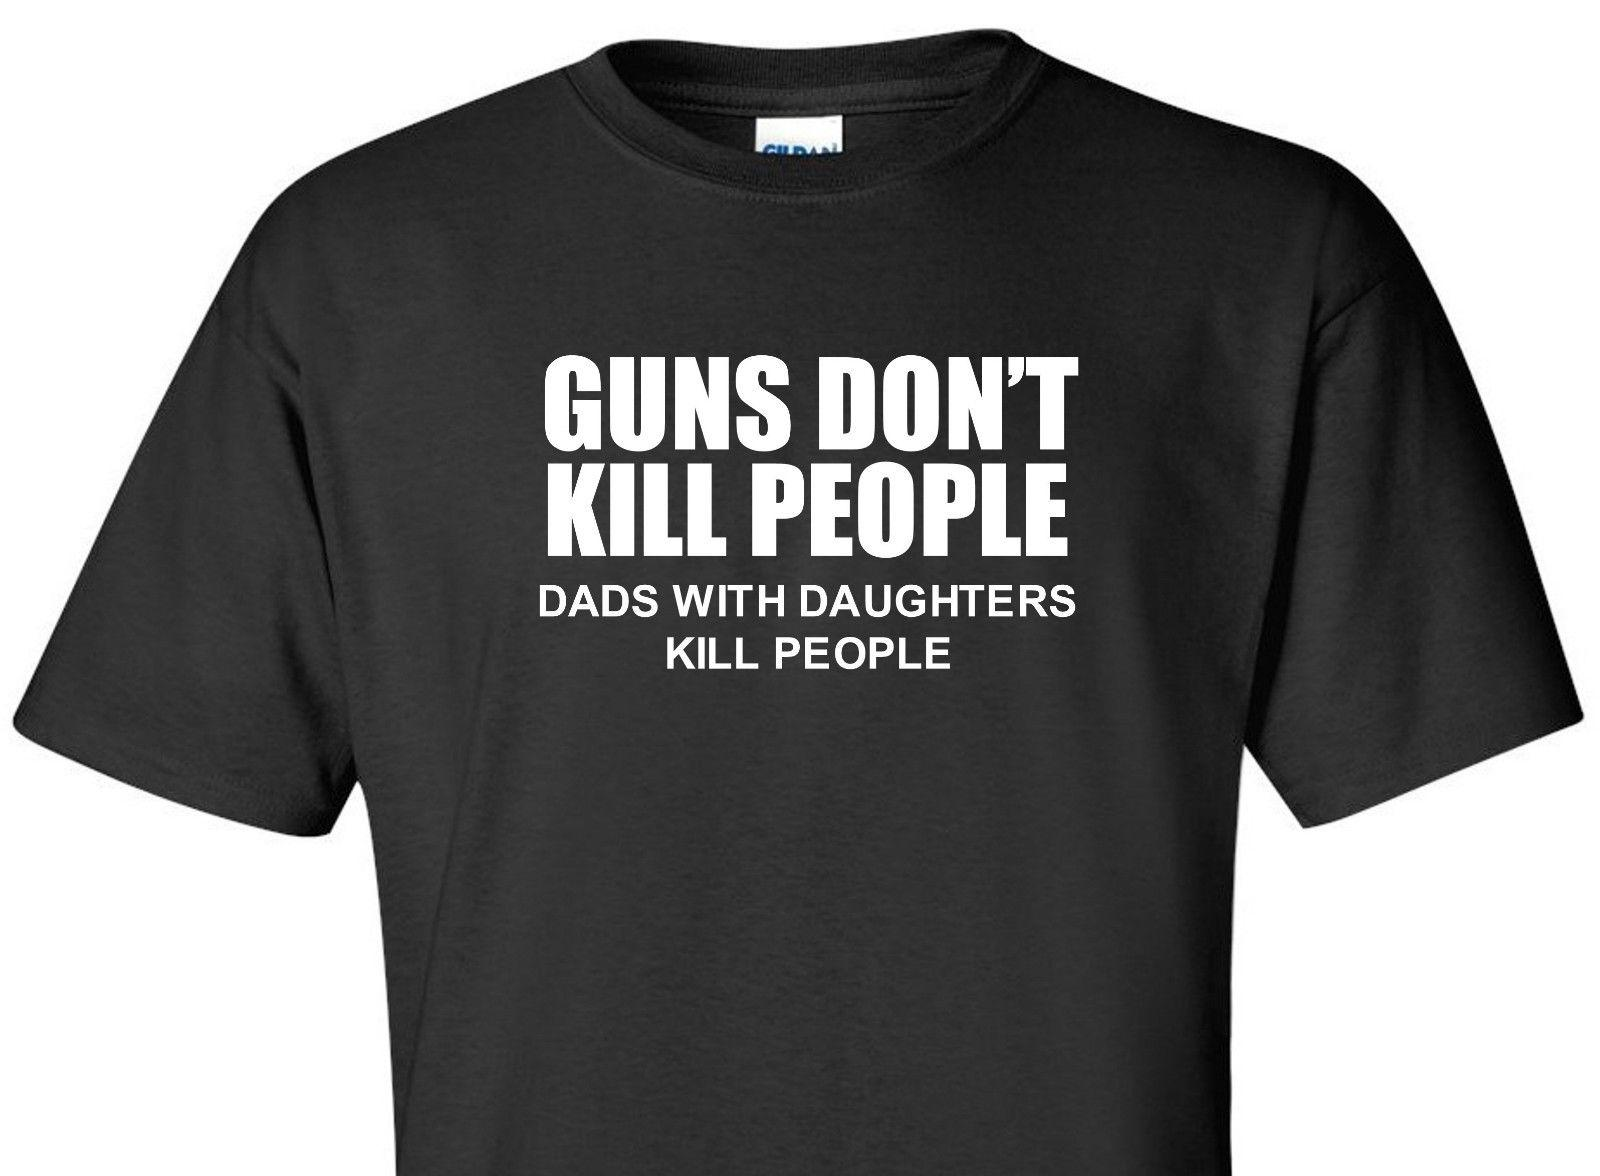 5ba3355a Guns Don't Kill People Dads Daughters T-Shirt Father's Gift for Dad Funny  ShirtFunny free shipping Casual tshirt